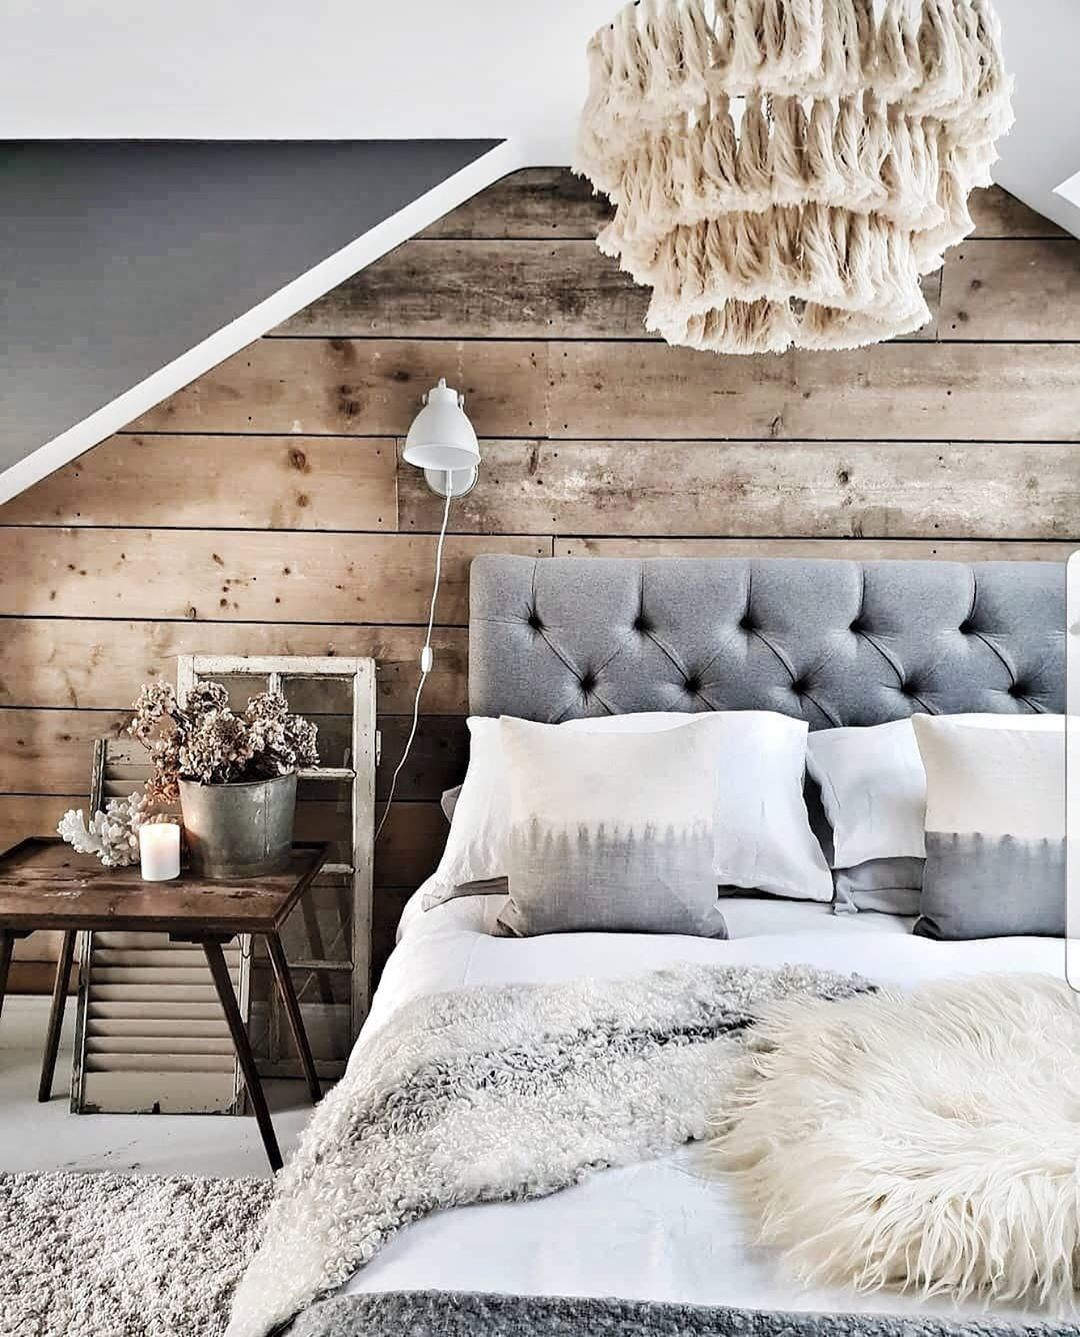 House Beautiful Uk On Instagram Cosy Bedroom Vibes Right Here We Love This Loft Bedroom By Malmo And M Modern Rustic Bedrooms Bedroom Interior Bedroom Loft Modern bedroom ideas uk